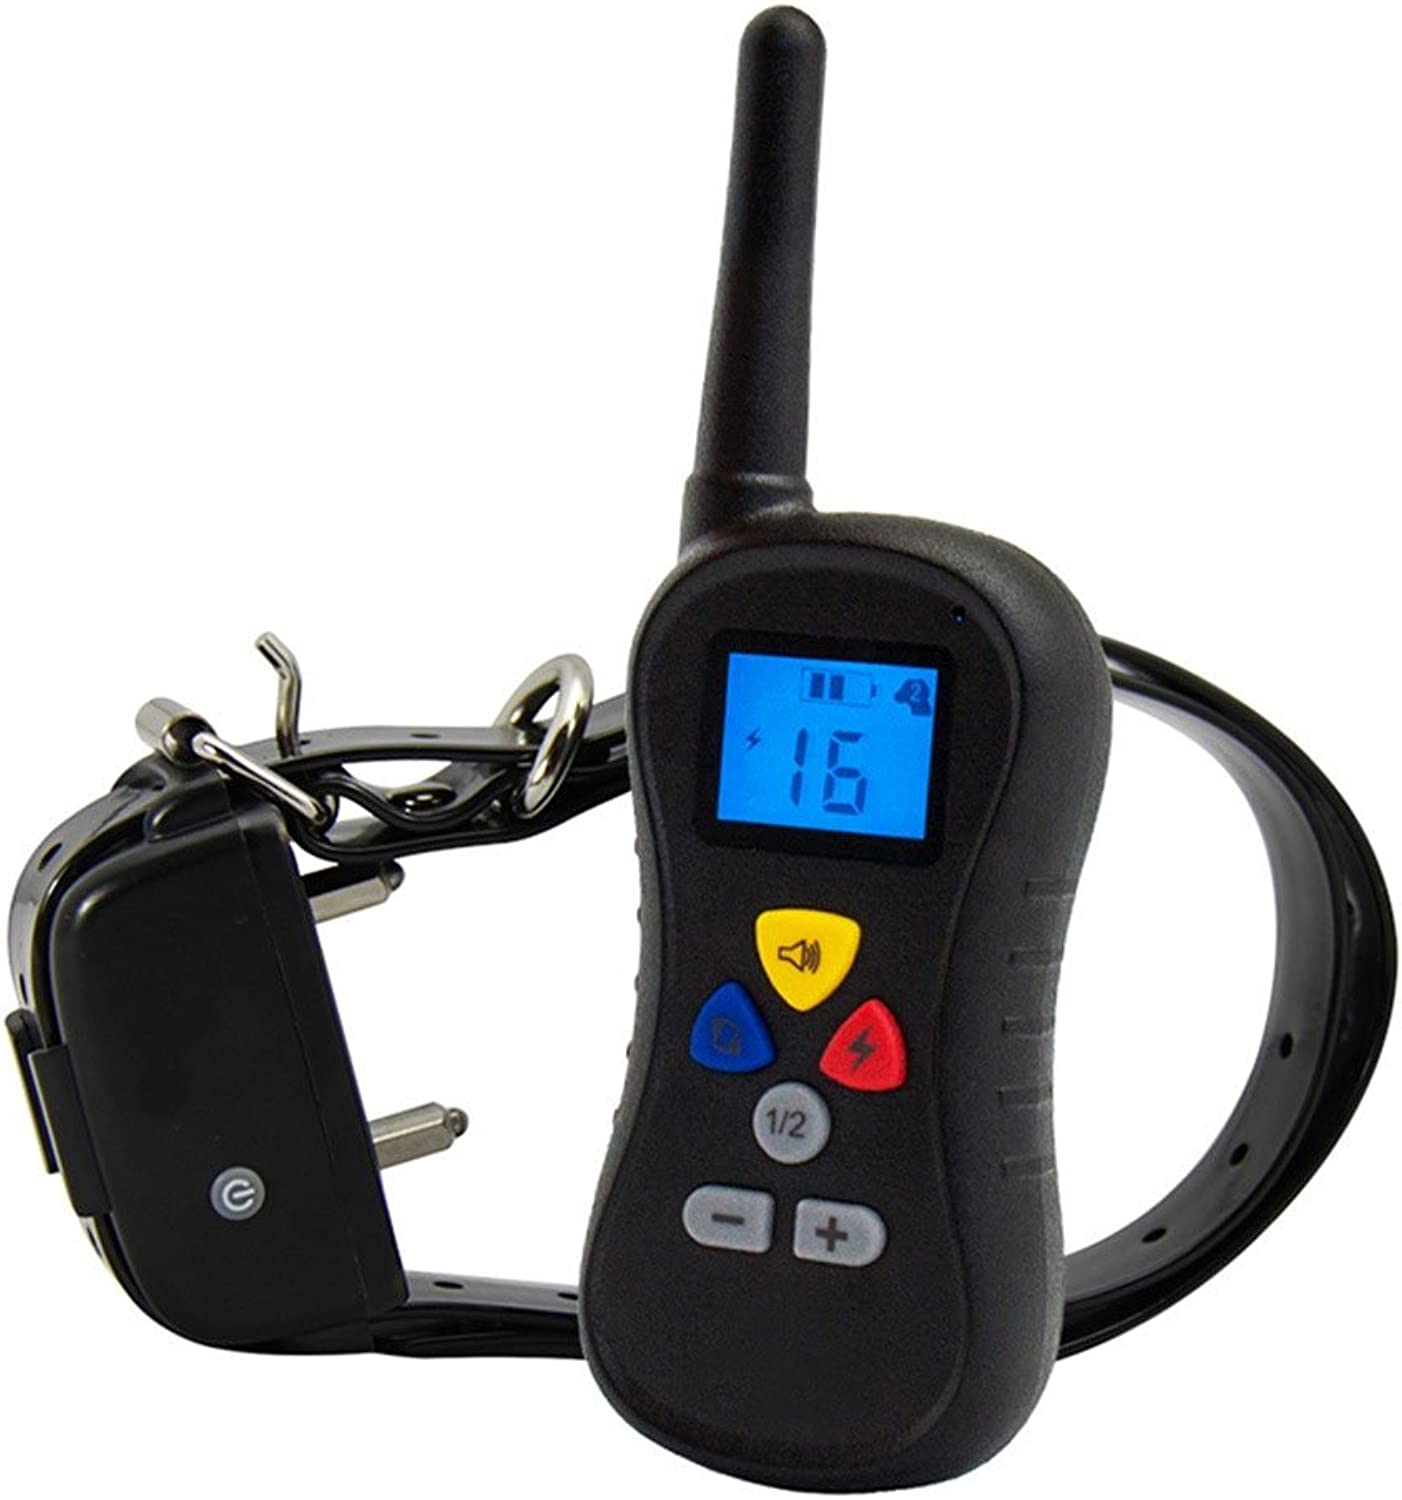 Sank Waterproof Remote Dog Training Collar,Vibration Shock and Tone with Backlight LCD for Large Medium Small Dogs